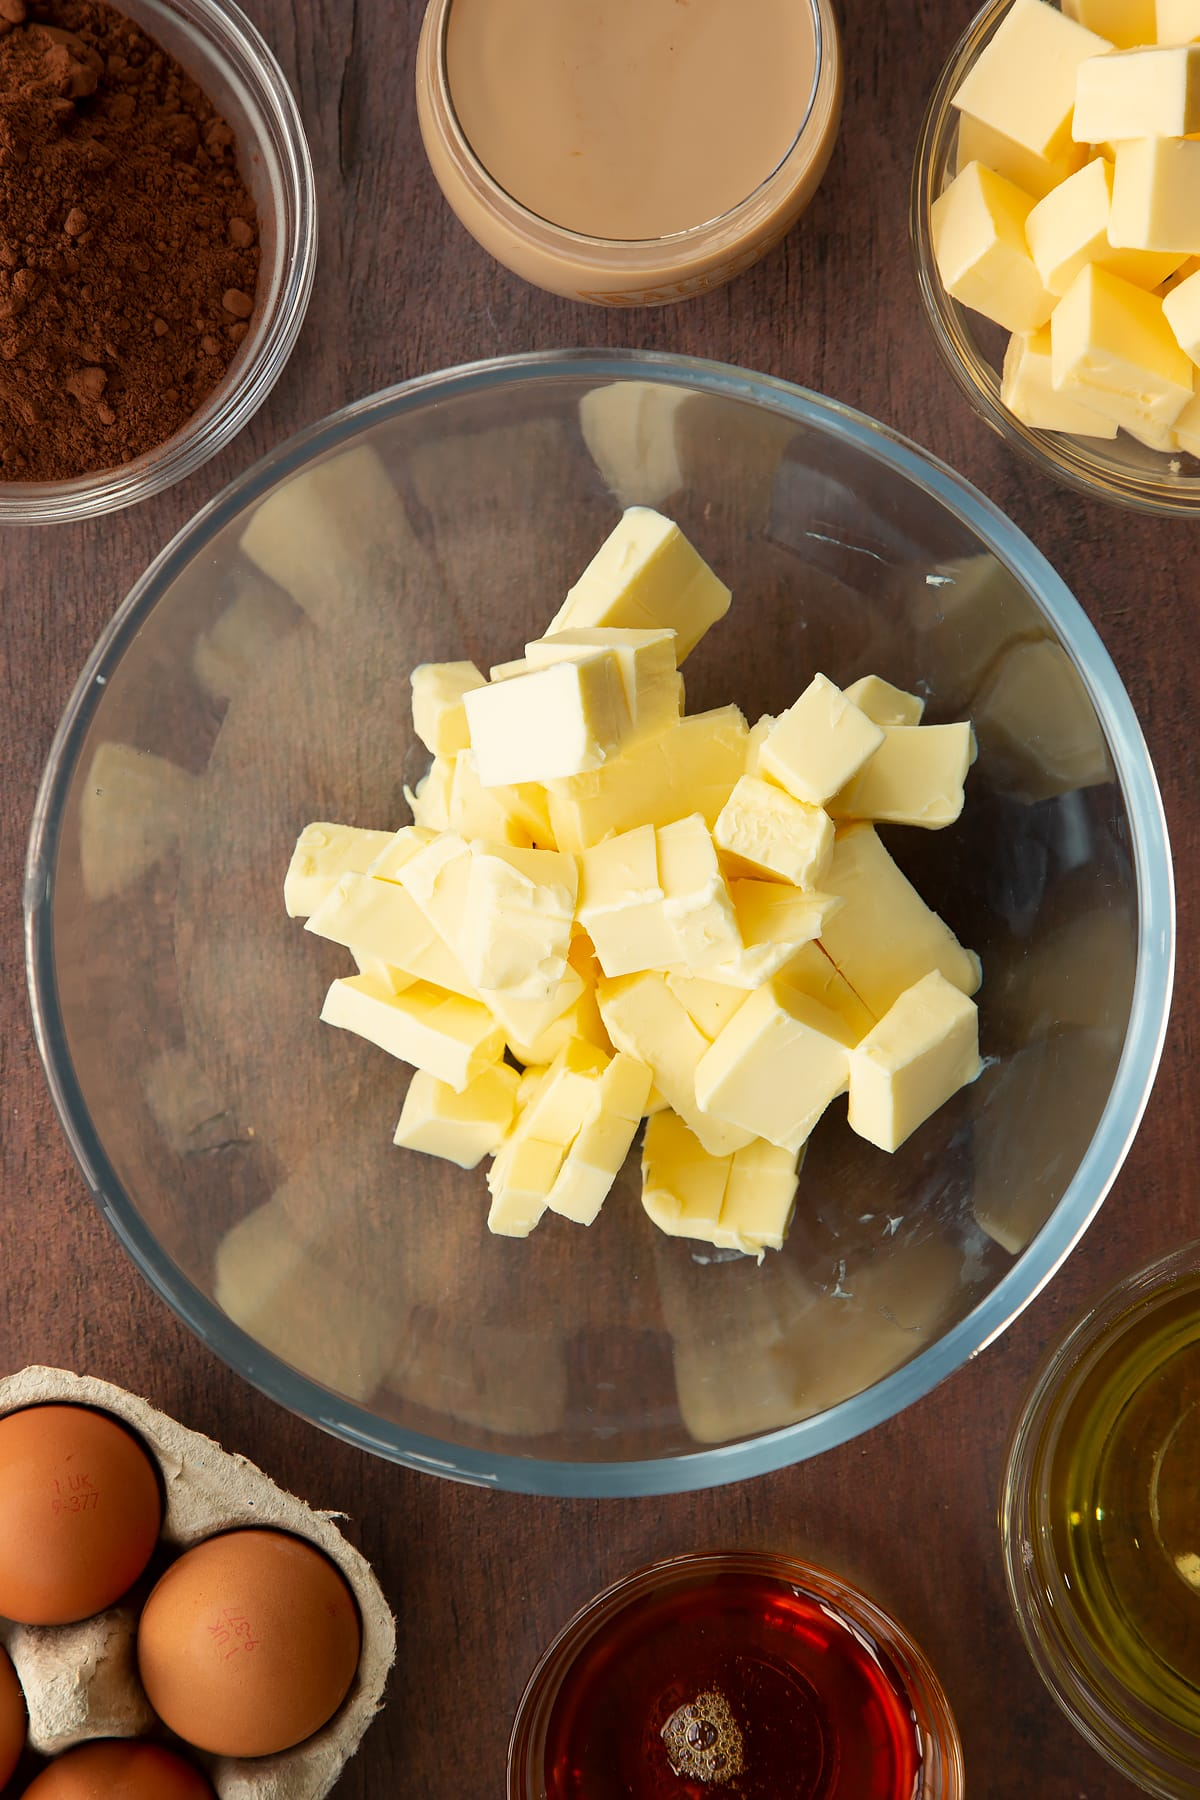 Cubed butter in a glass mixing bowl. Ingredients to make a Baileys cake surround the bowl.